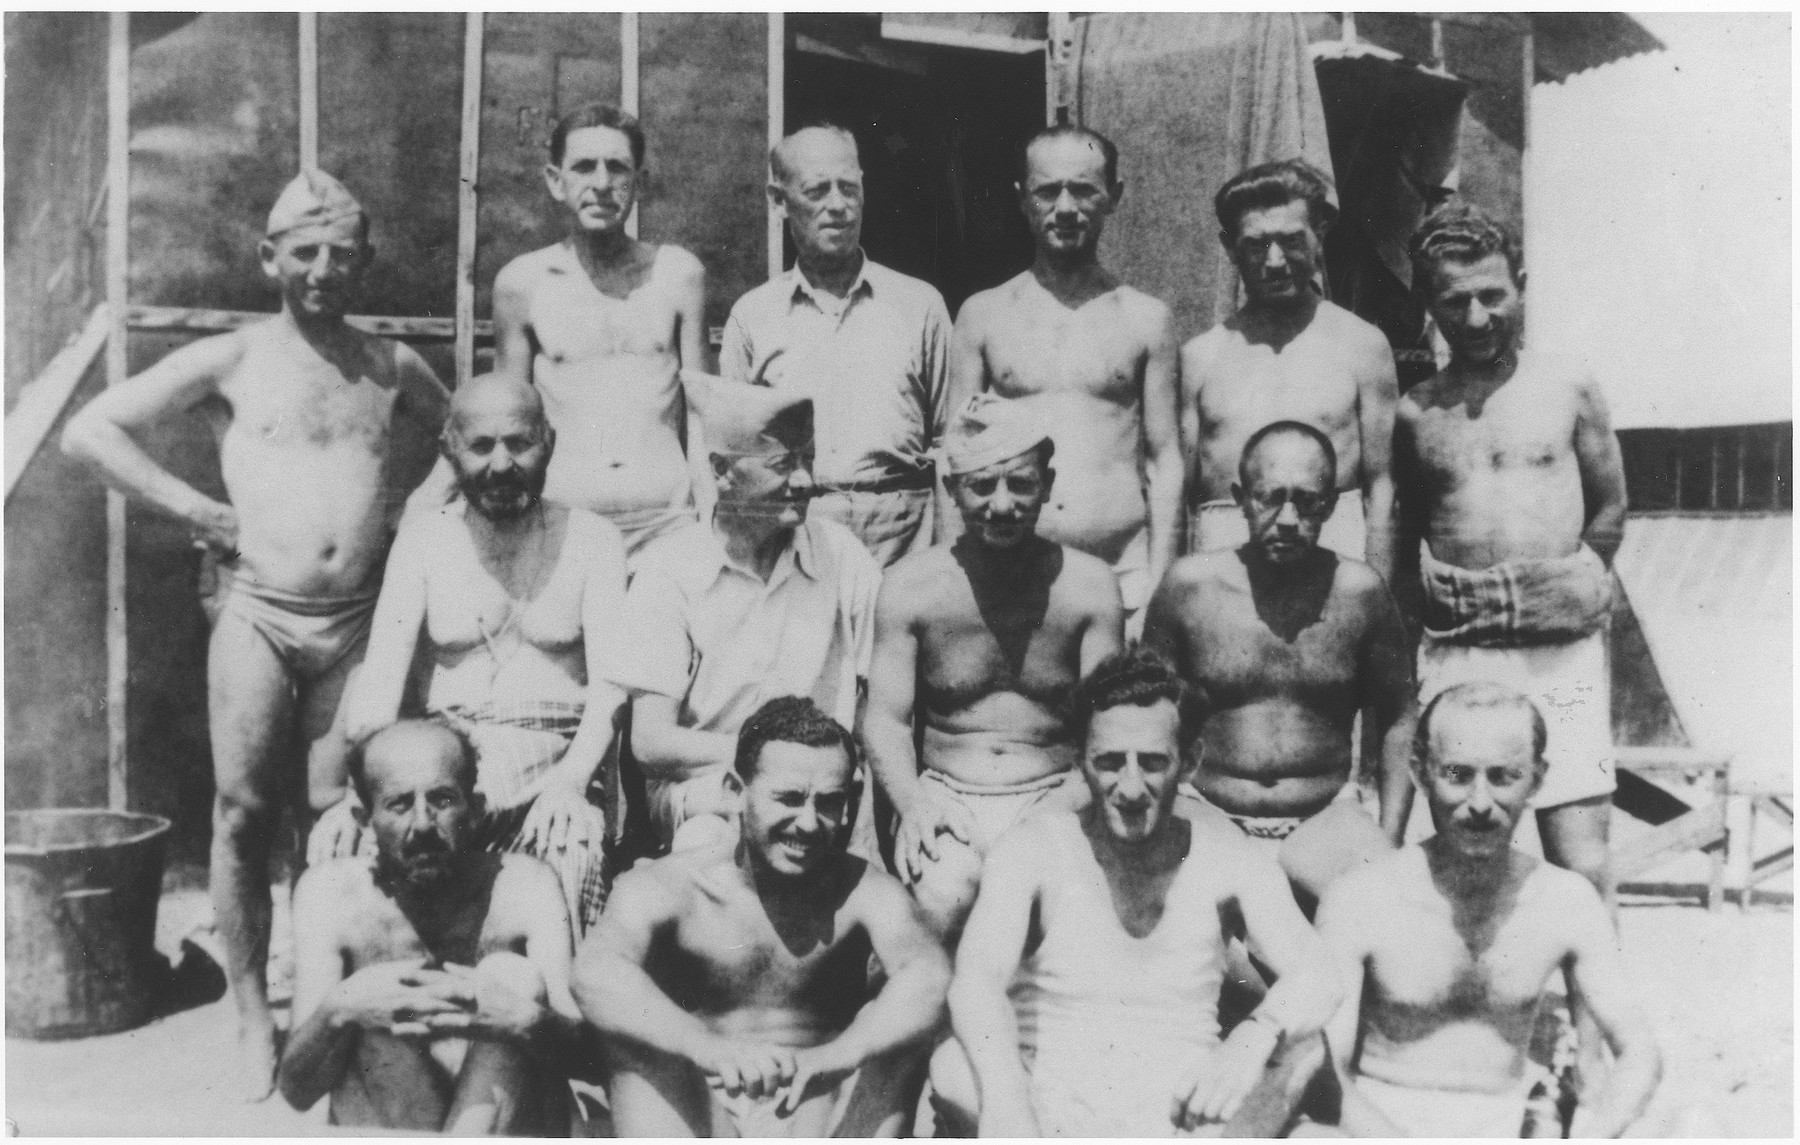 Group portrait of male prisoners at the Gurs internment camp.  Among those pictured is Rudolf Goldreich (middle row, second from the left), a former passenger on the MS St. Louis.